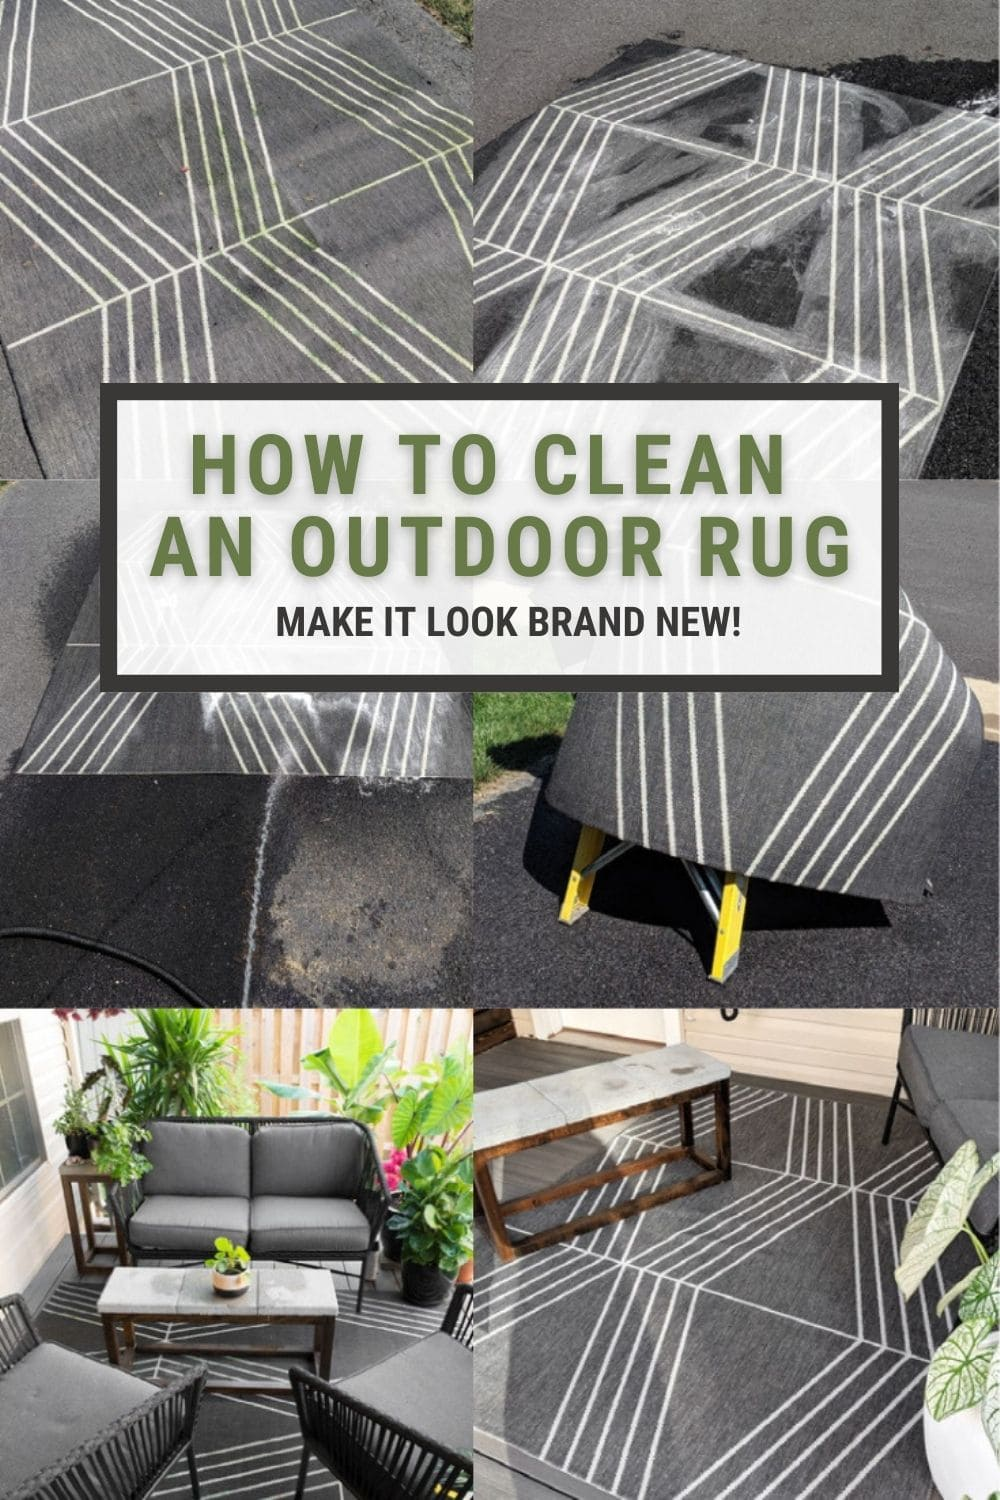 image collage of how to clean an outdoor rug with text how to clean an outdoor rug, make it look brand new!